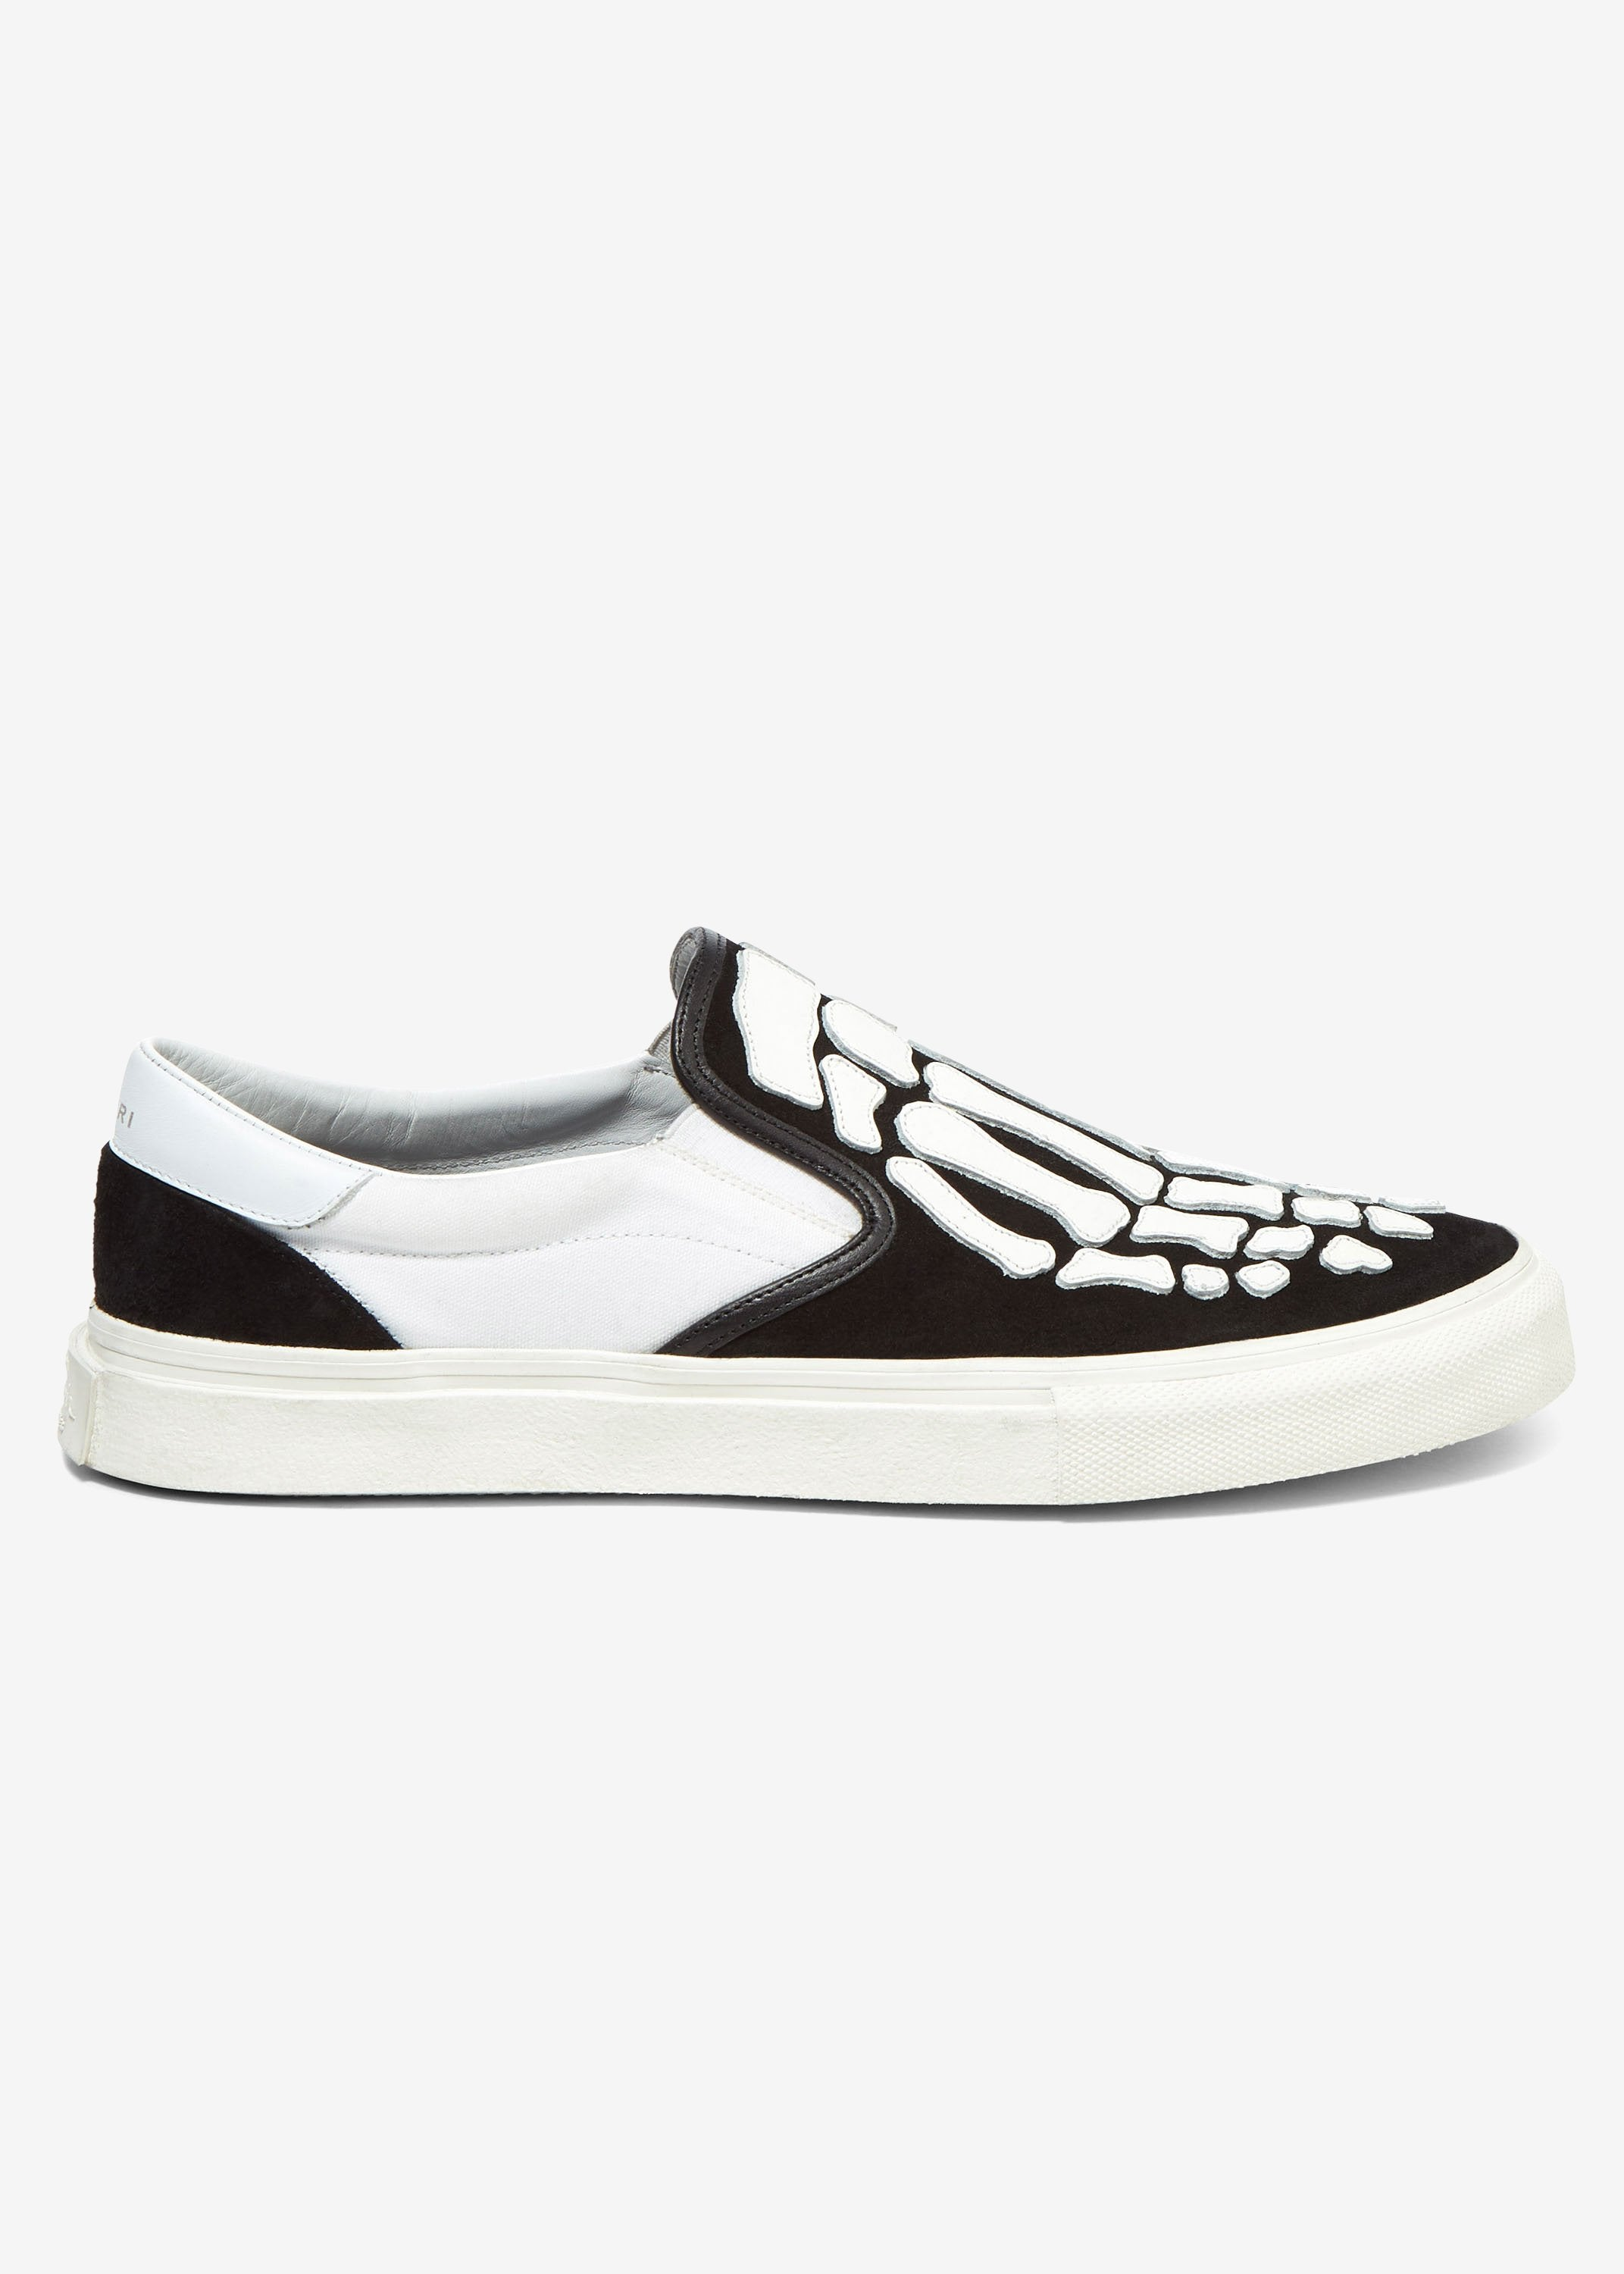 skel-toe-slip-on-black-white-image-1